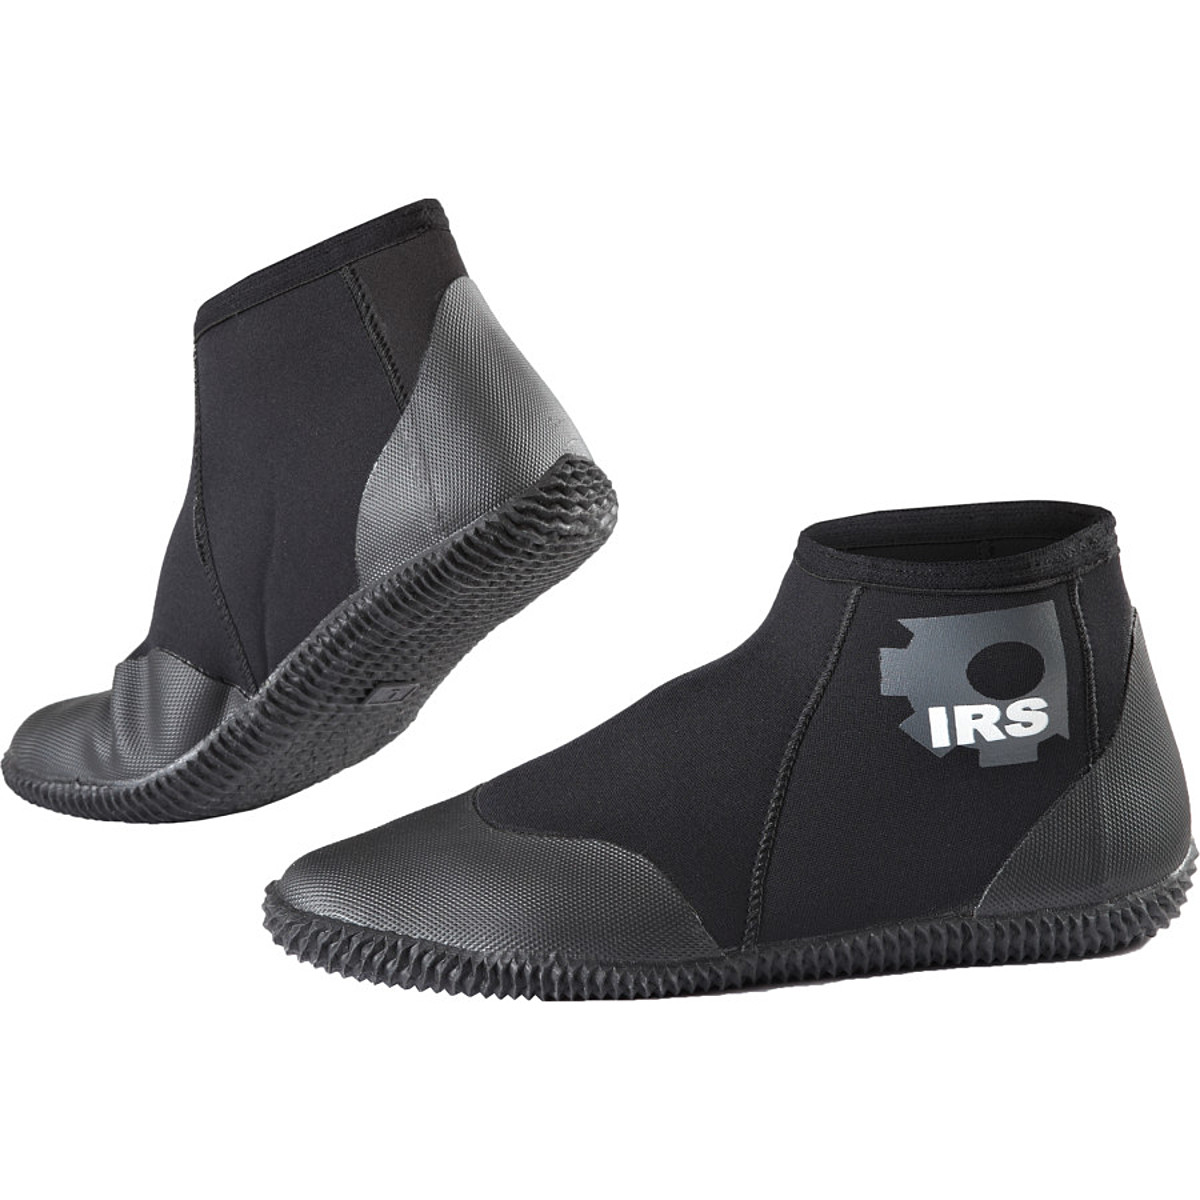 photo of a Immersion Research footwear product